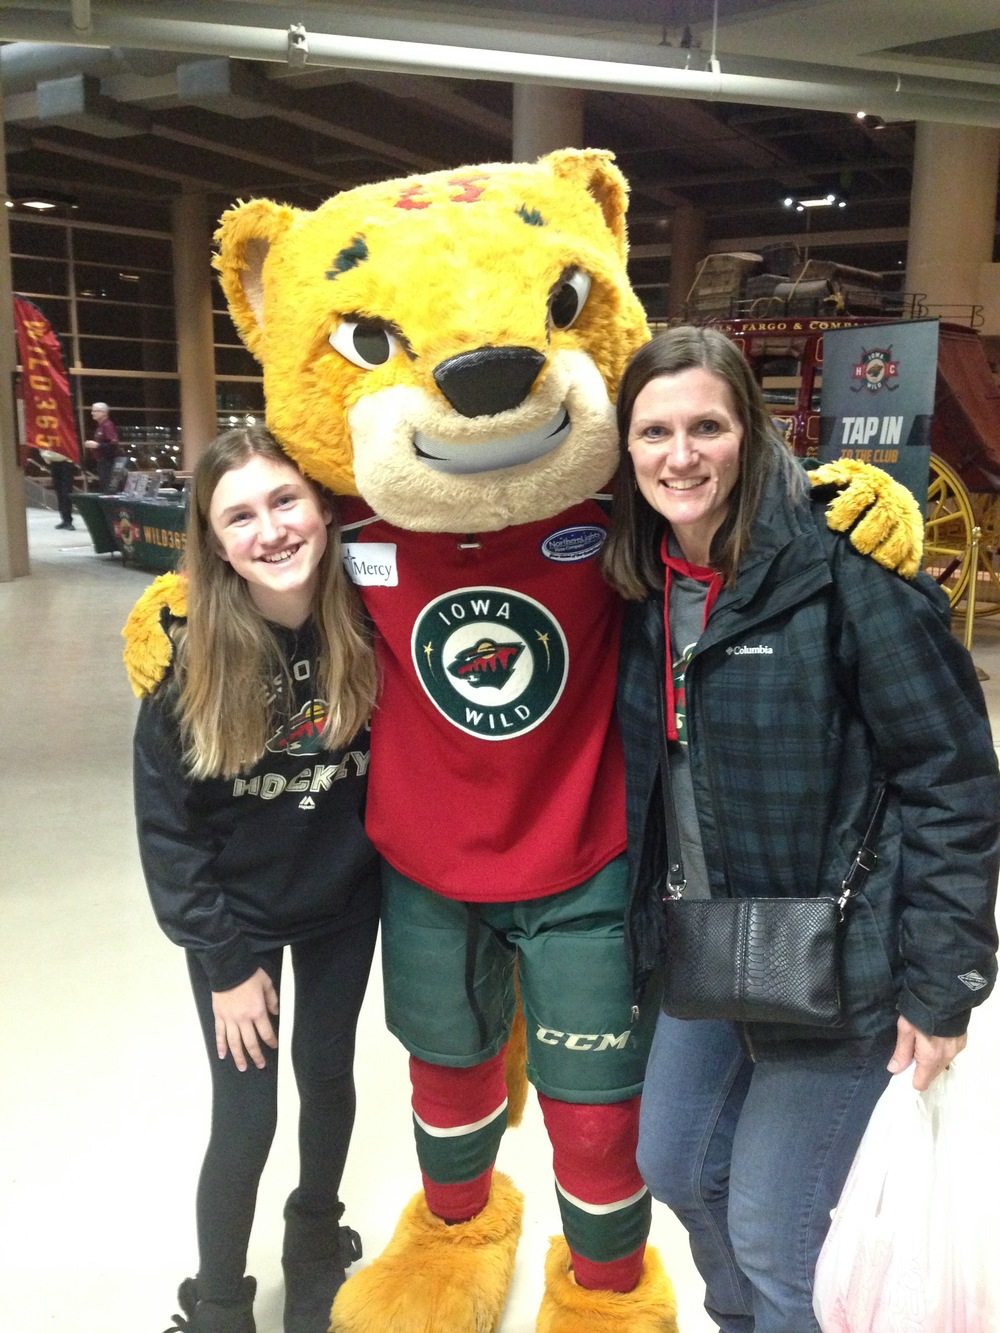 Ashlee-and-Mommy-with-Crash-Iowa-Wild-Hockey.jpg